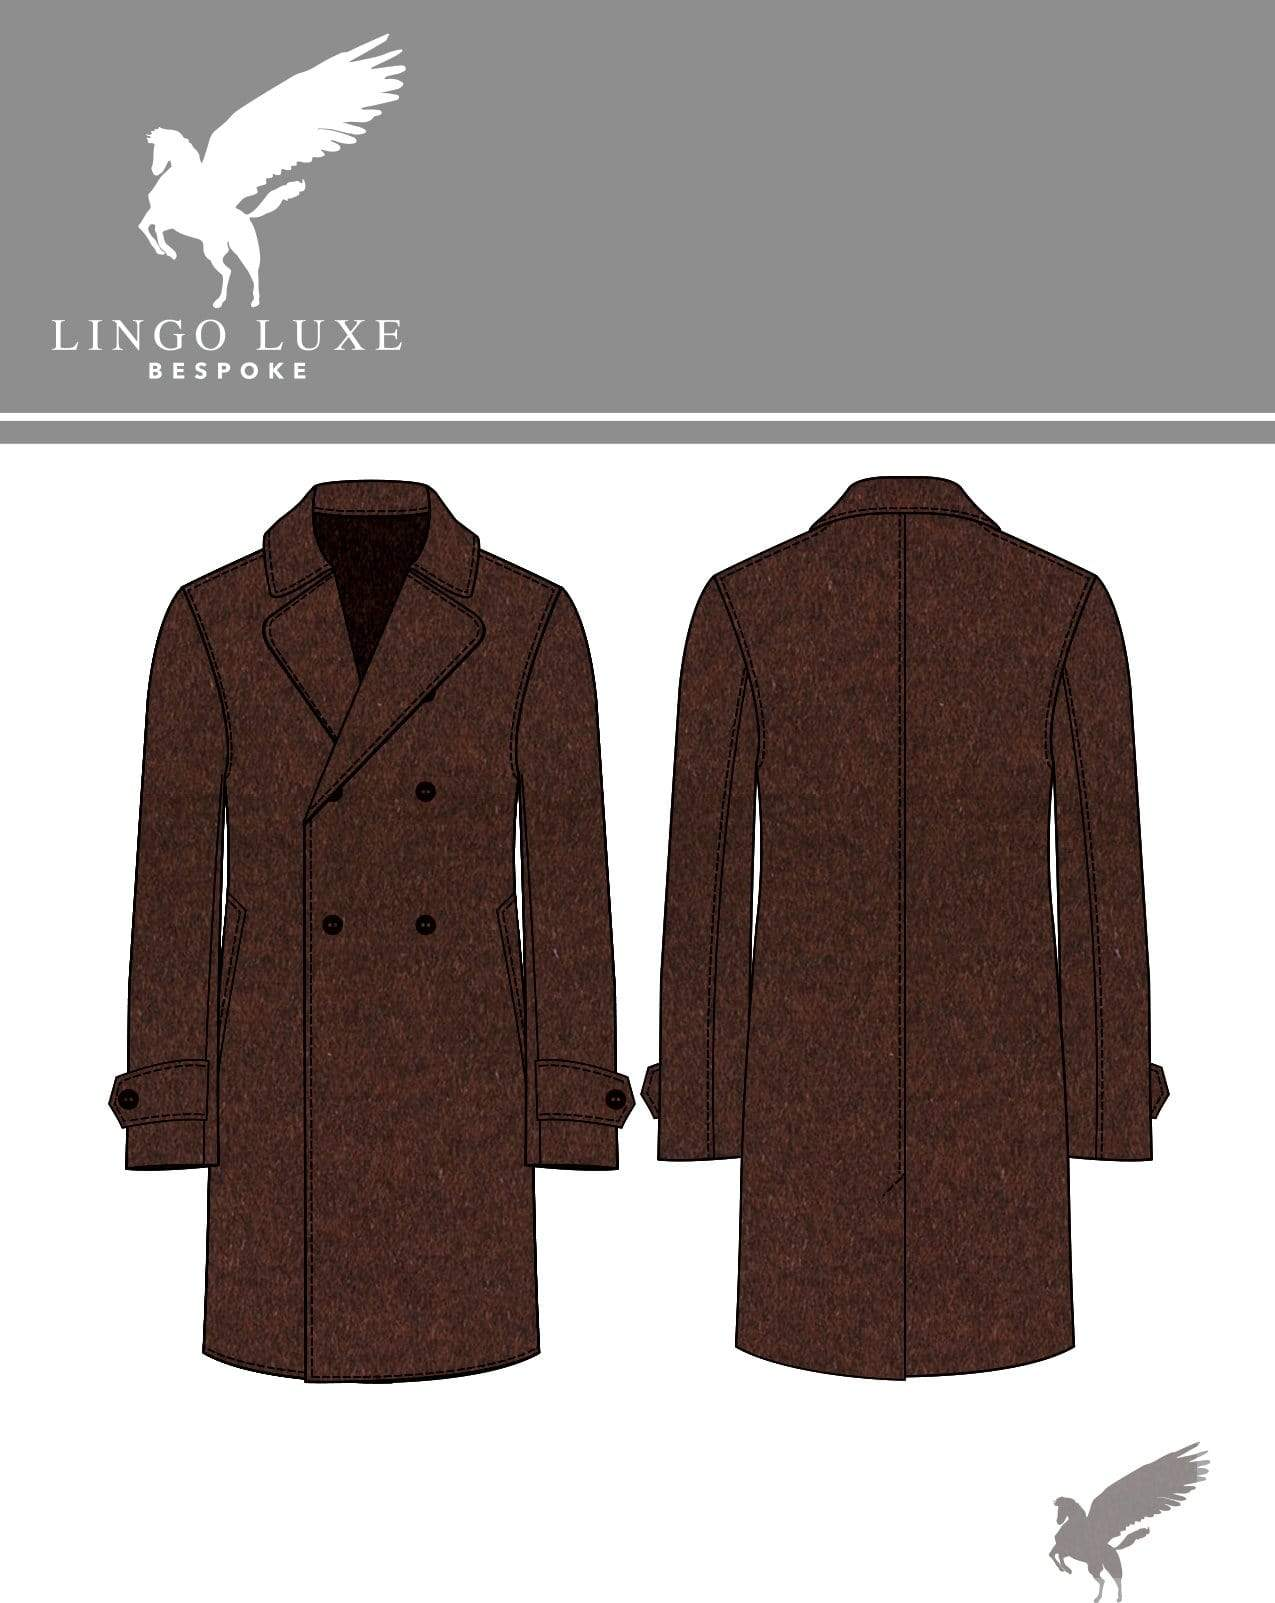 Outerwear | Lingo Luxe The Stately Overcoat | Rusty Nail-Lingo Luxe Bespoke